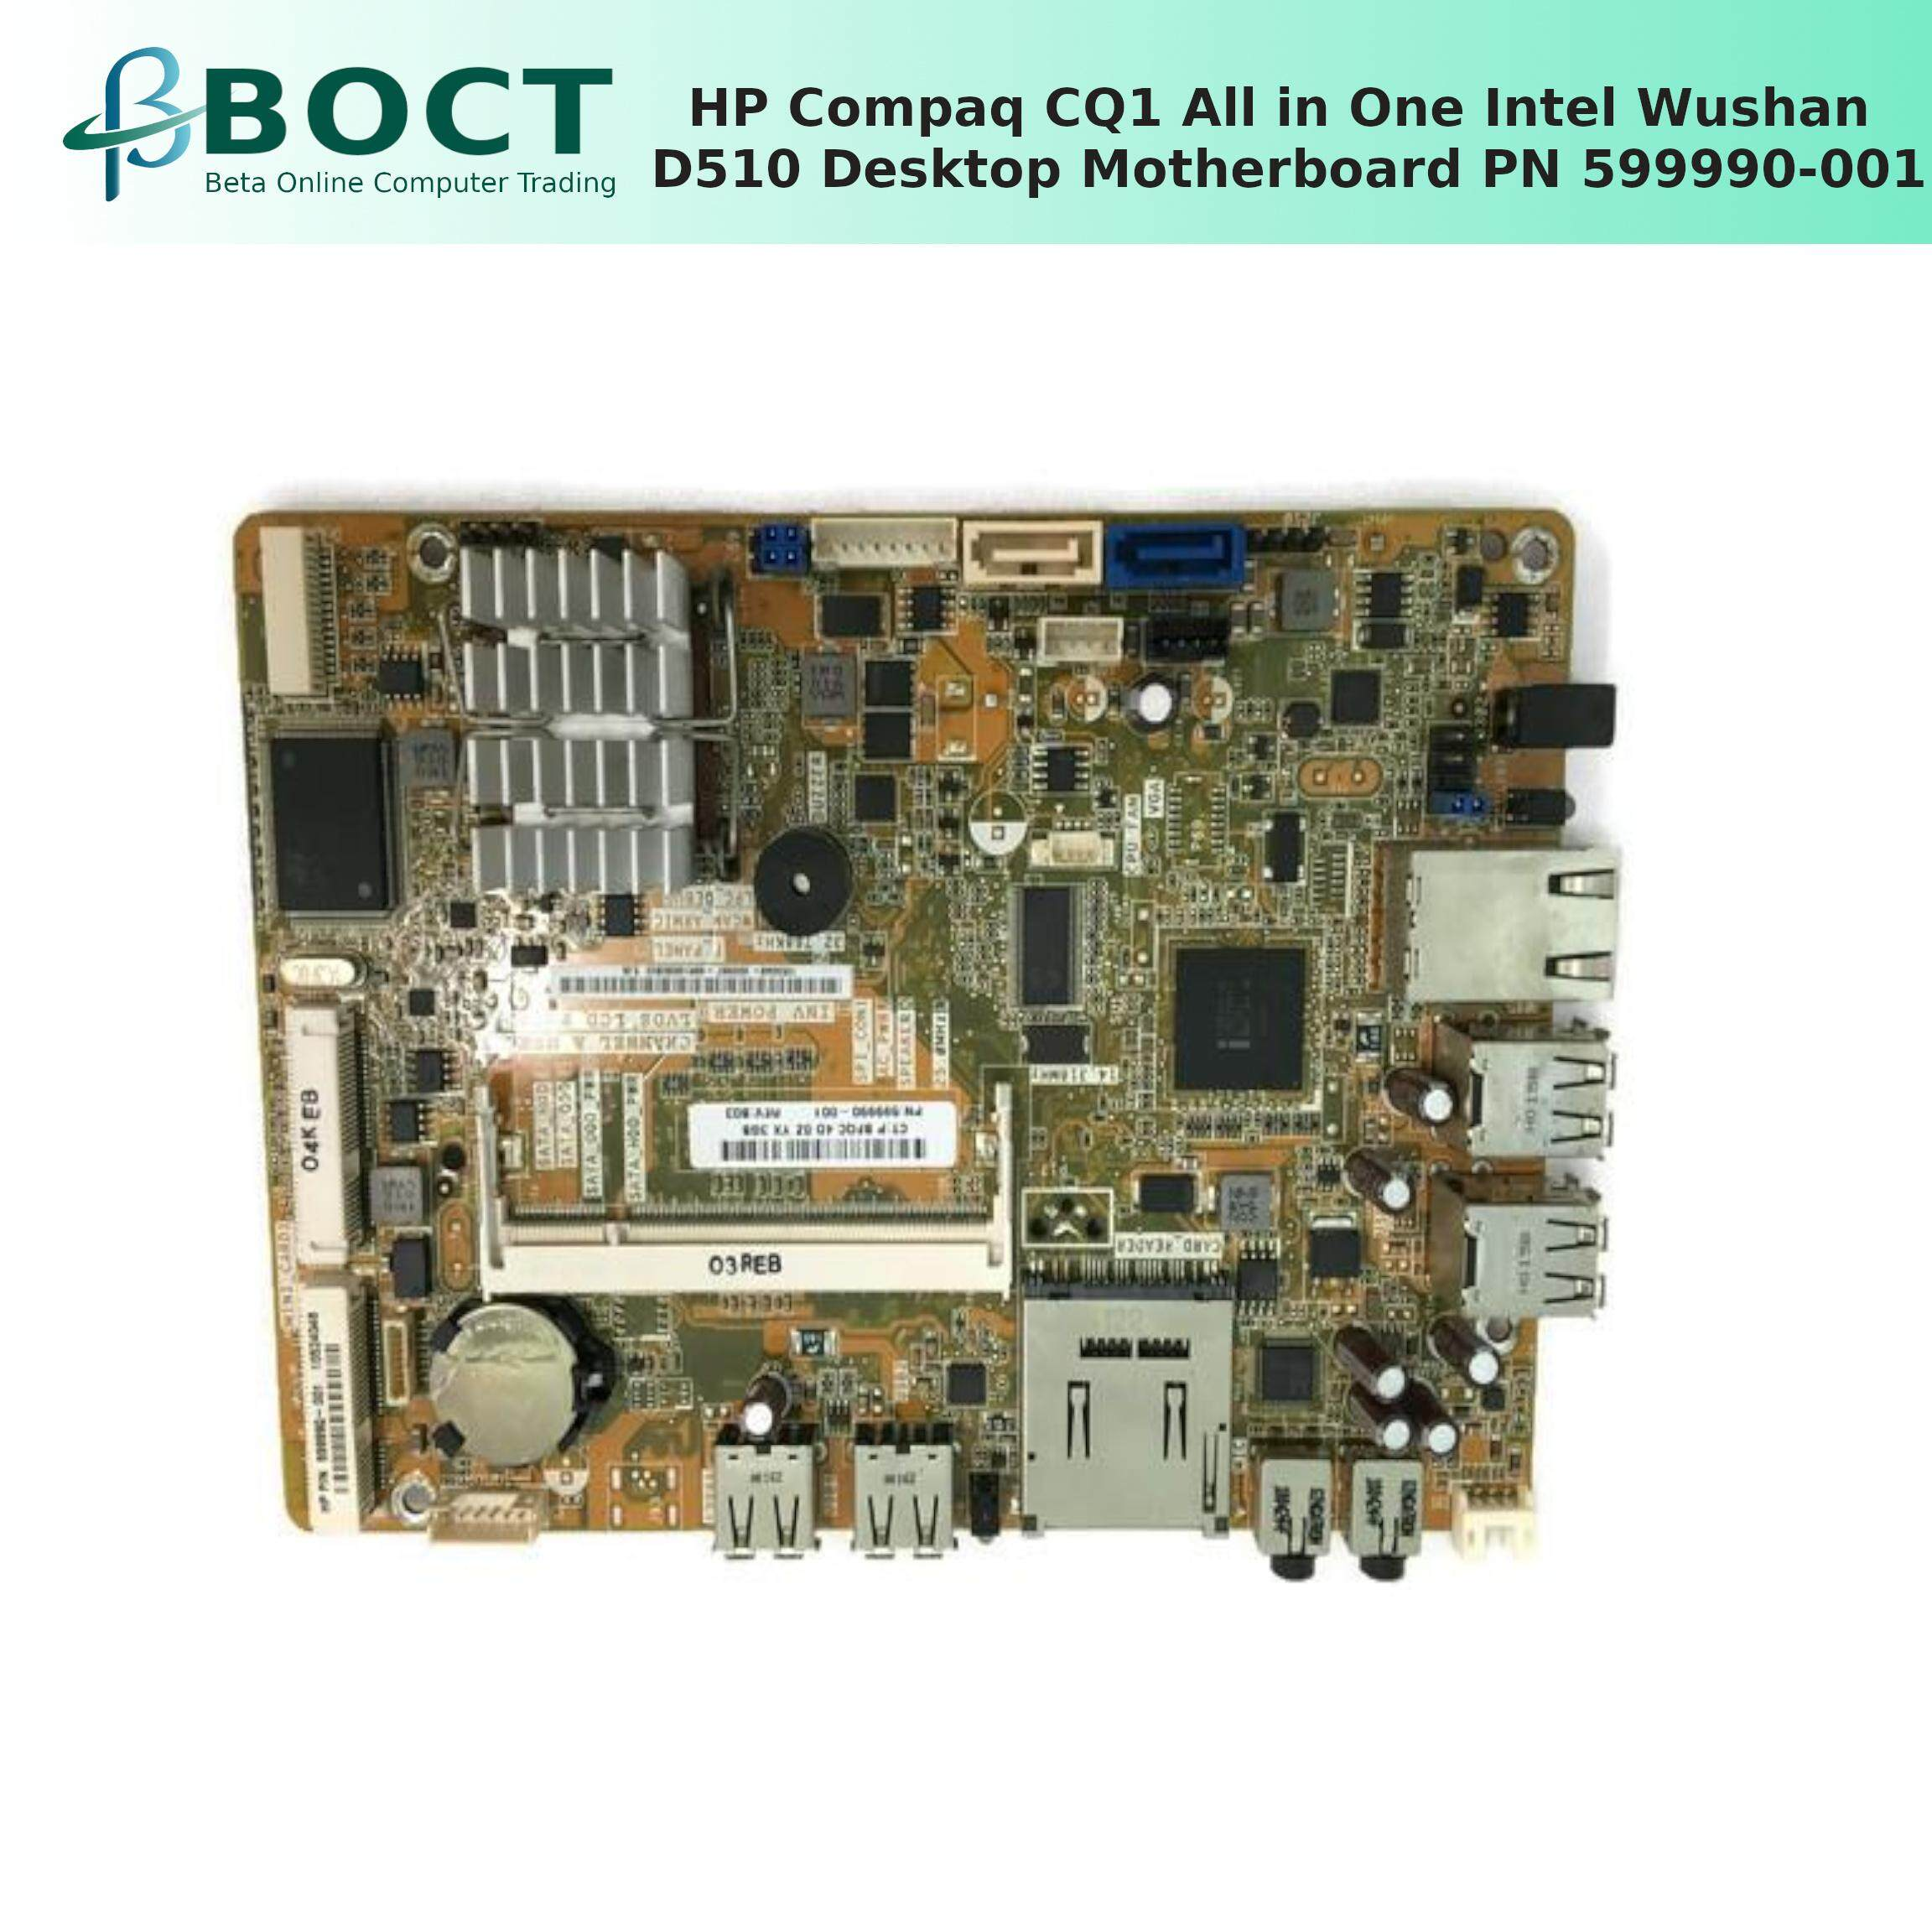 (REFURBISHED) HP Compaq CQ1 All in One Intel Wushan D510 Desktop  Motherboard P/N 599990-001